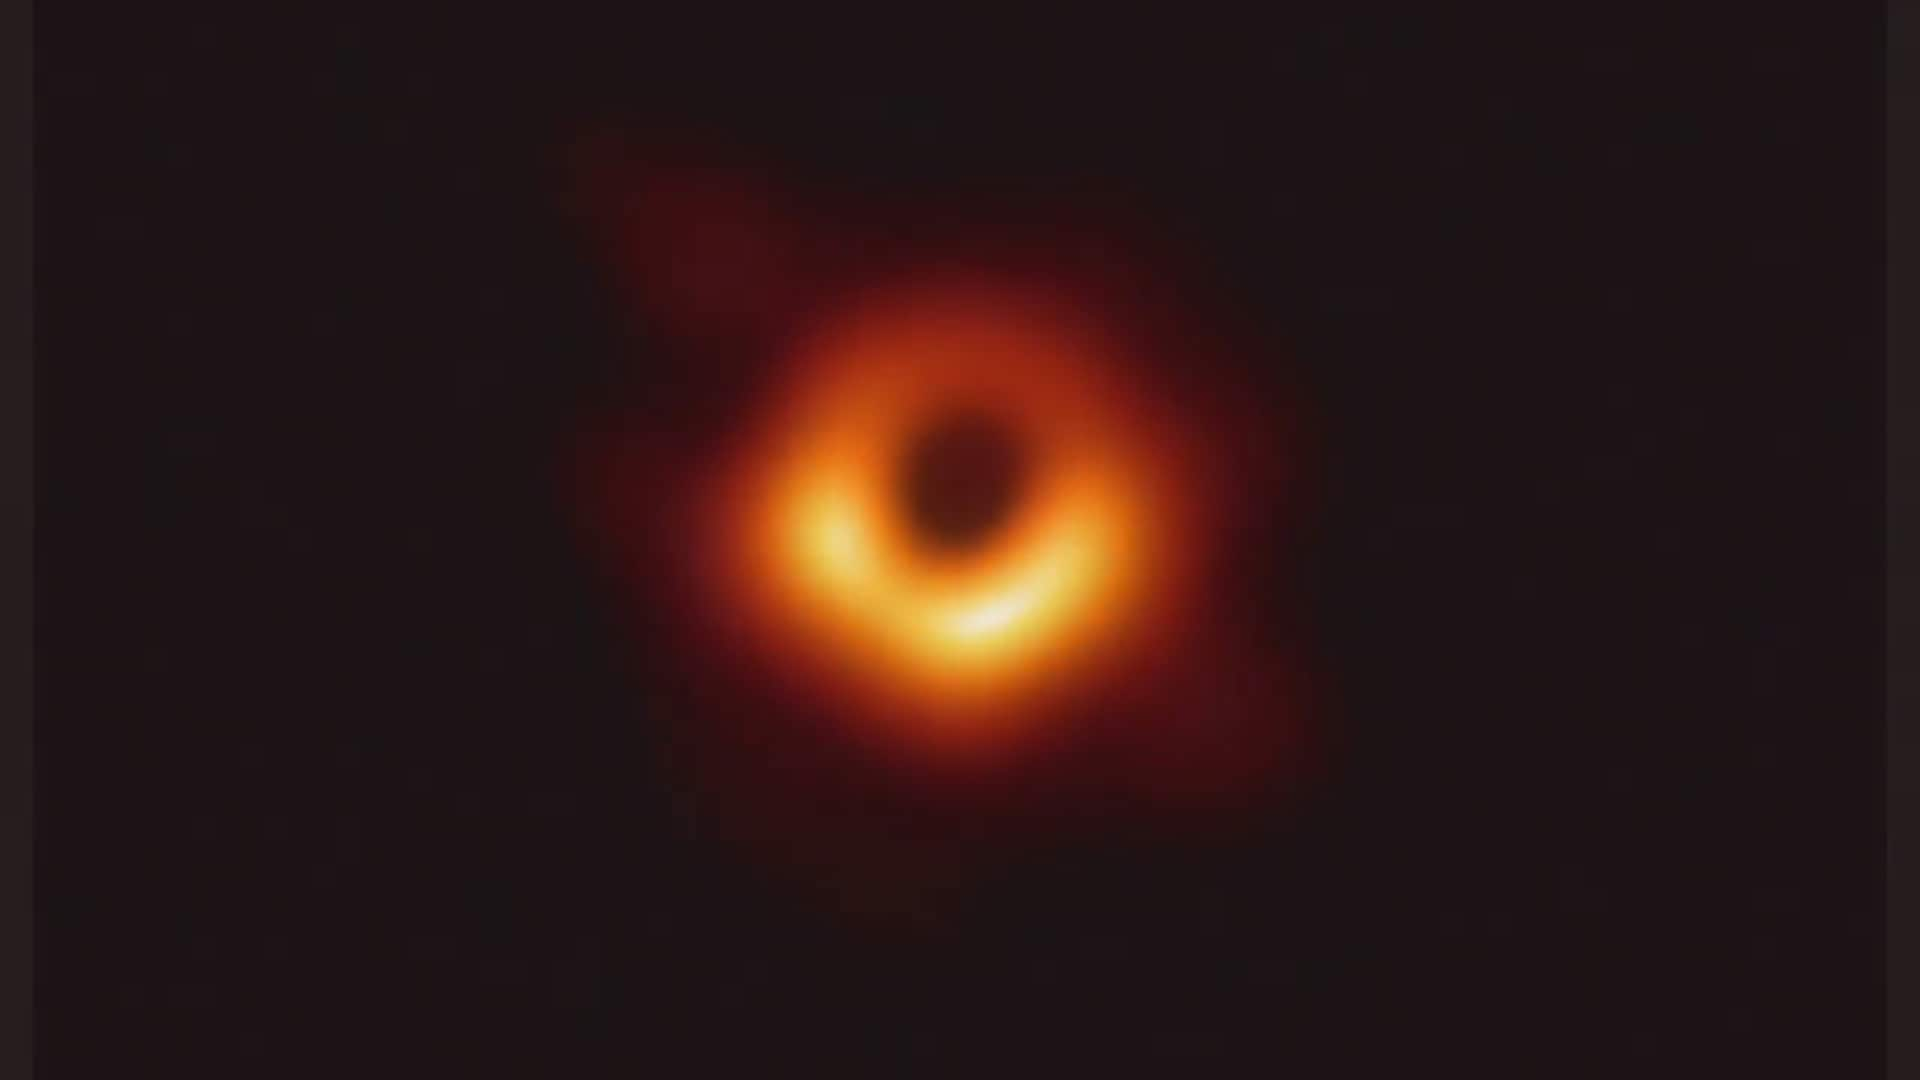 Black hole event horizon: This is the first image of a black hole captured using a global network of telescopes